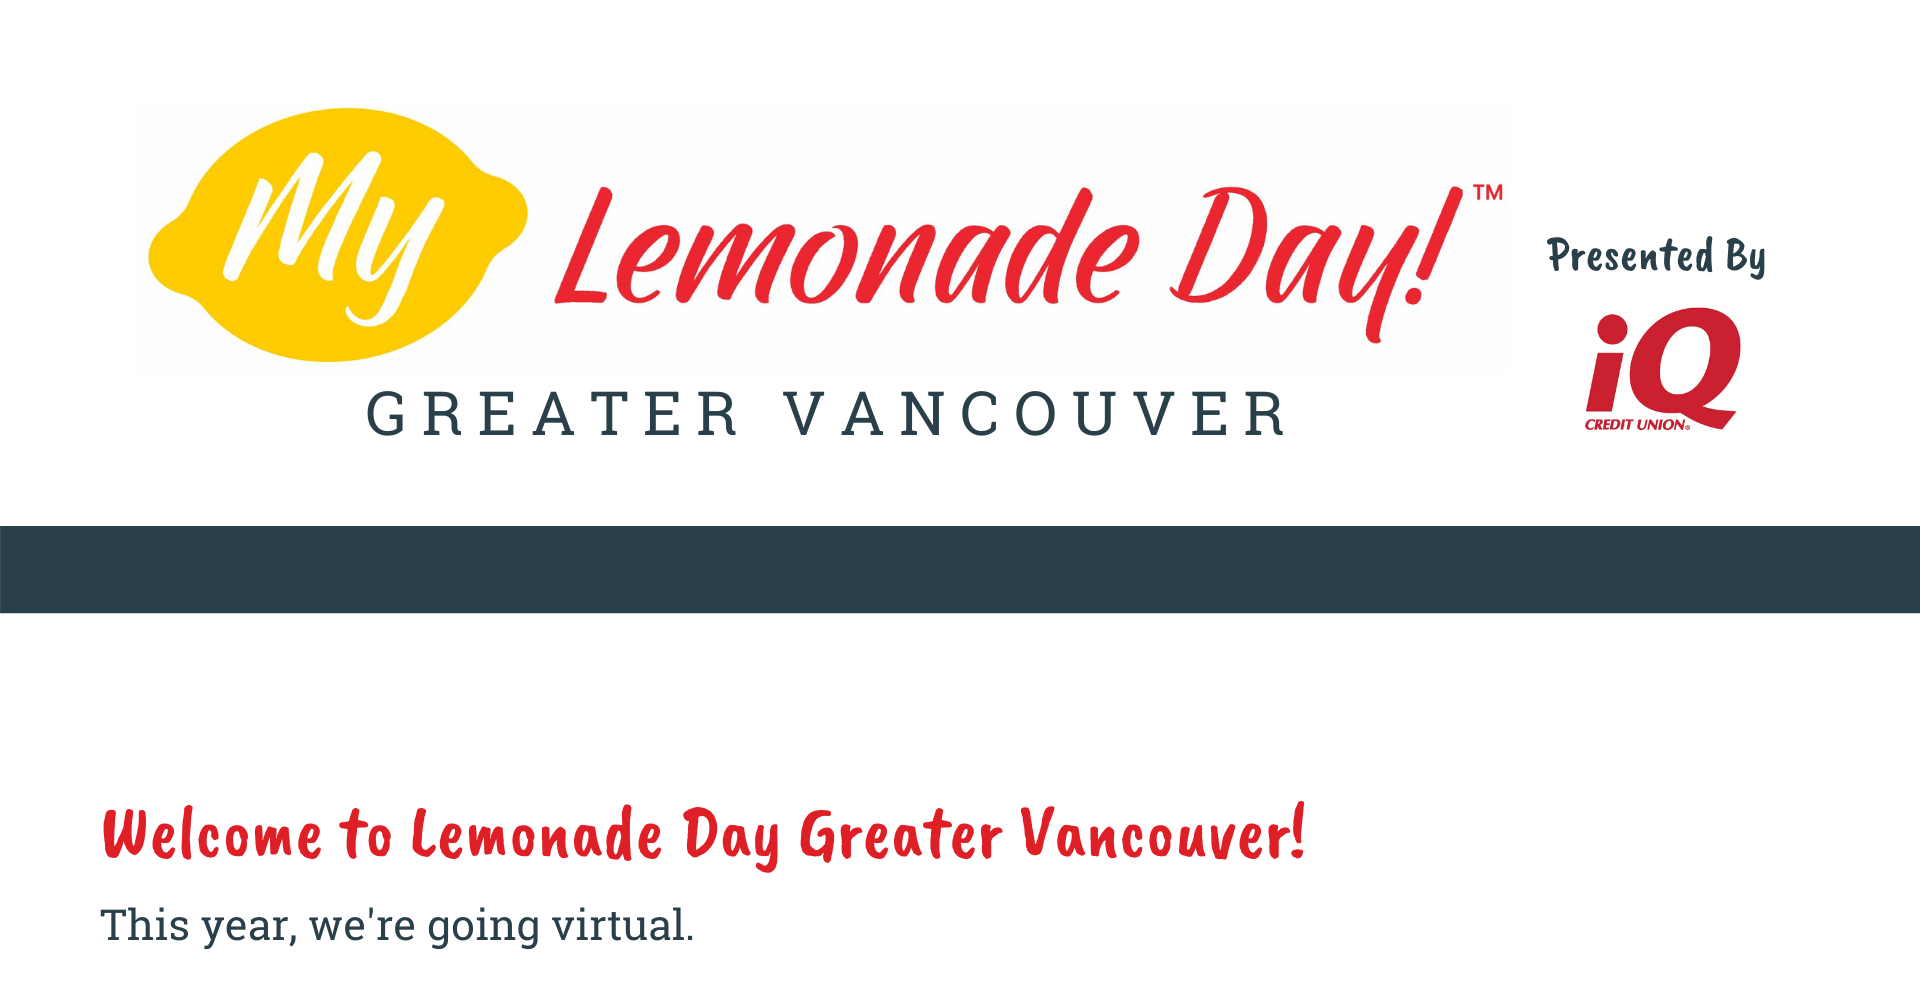 my lemonade day greater vancouver presented by iq credit union vancouver washington welcome to lemonade day greater vancouver this year, we're going virtual